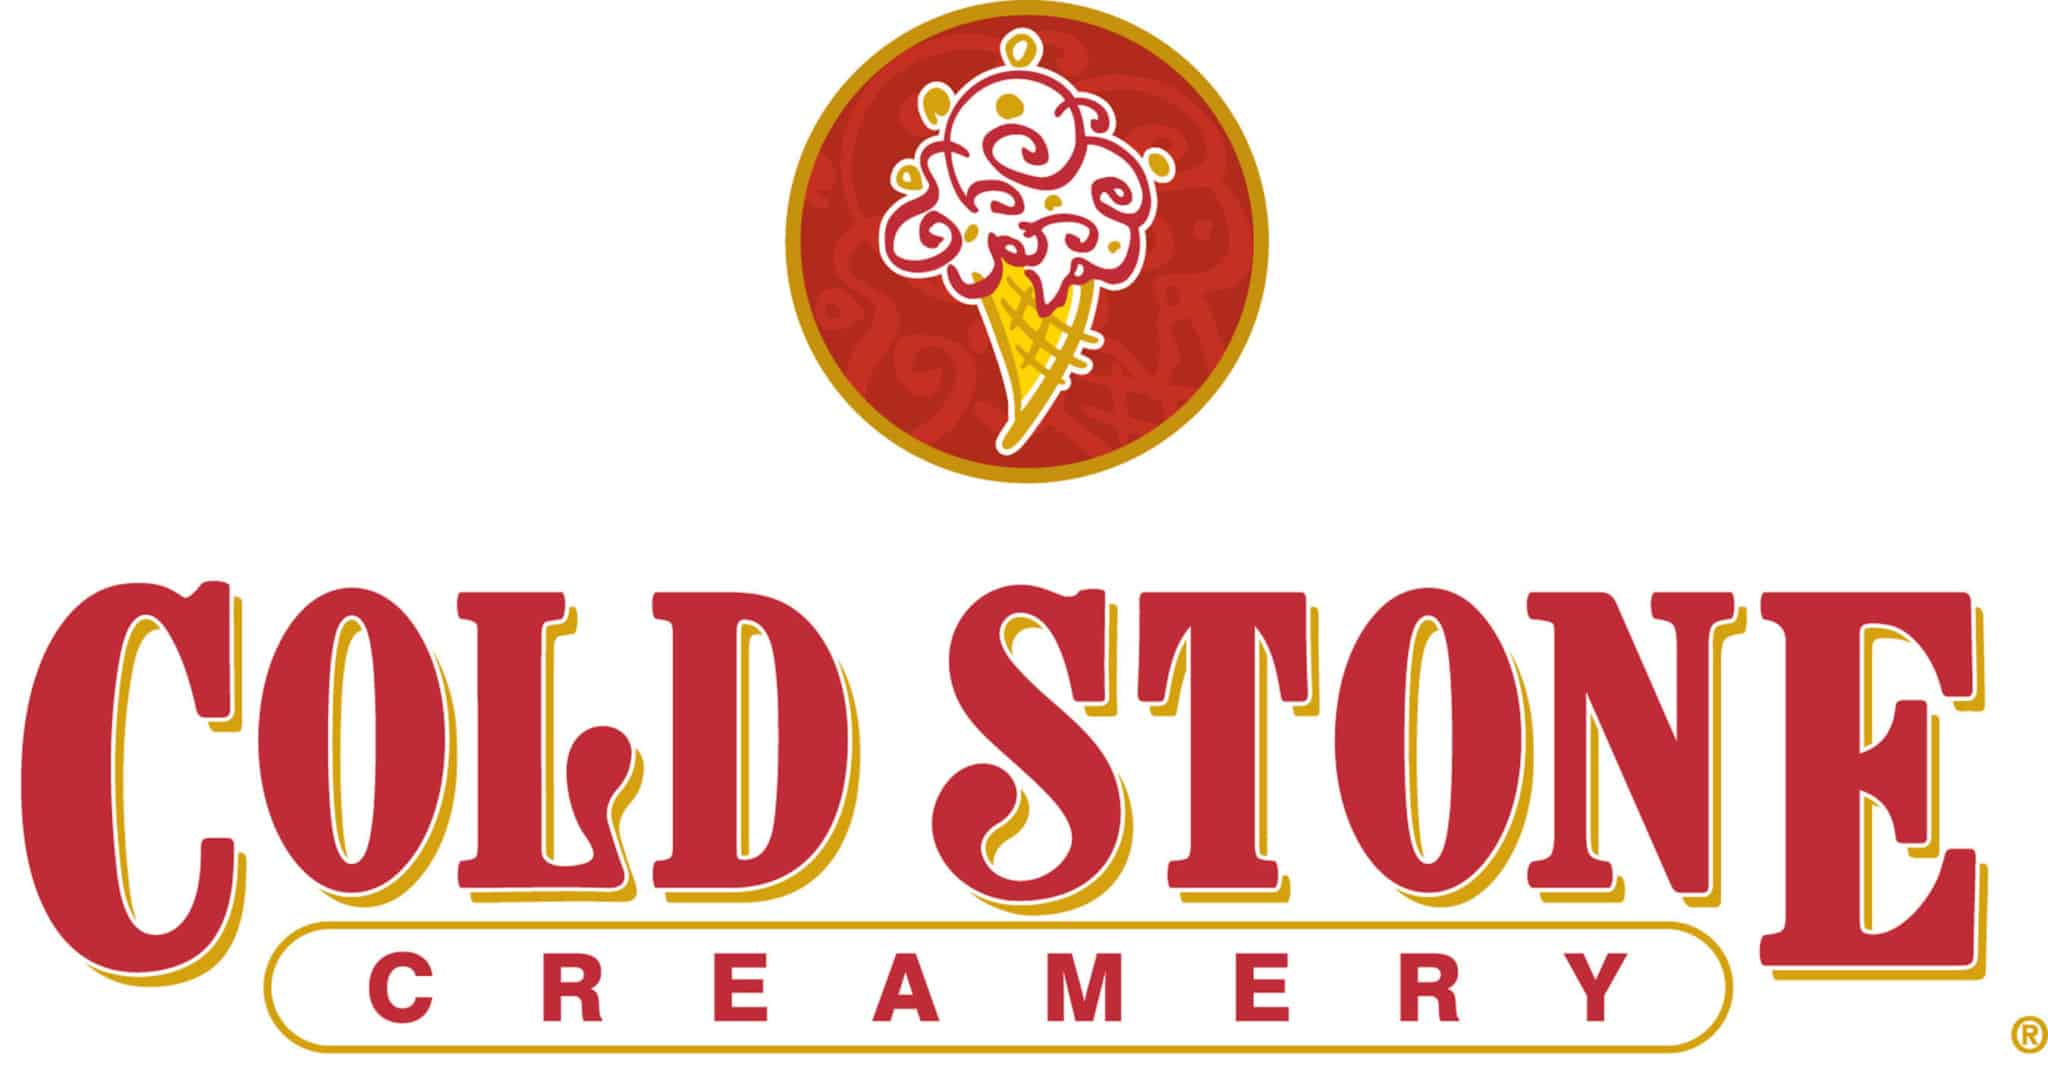 Cold Stone Creamery delivers The Ultimate Ice Cream Experience(r) through a community of franchisees who are passionate about ice cream. The secret recipe for smooth and creamy ice cream is handcrafted fresh daily in each store, and then customized by combining a variety of mix-ins on a frozen granite stone. Headquartered in Scottsdale, Ariz., Cold Stone Creamery is a subsidiary of Kahala Brands, one of the fastest growing franchising companies in the world. For more information about Cold Stone Creamery, visit www.ColdStoneCreamery.com (PRNewsFoto/Cold Stone Creamery)